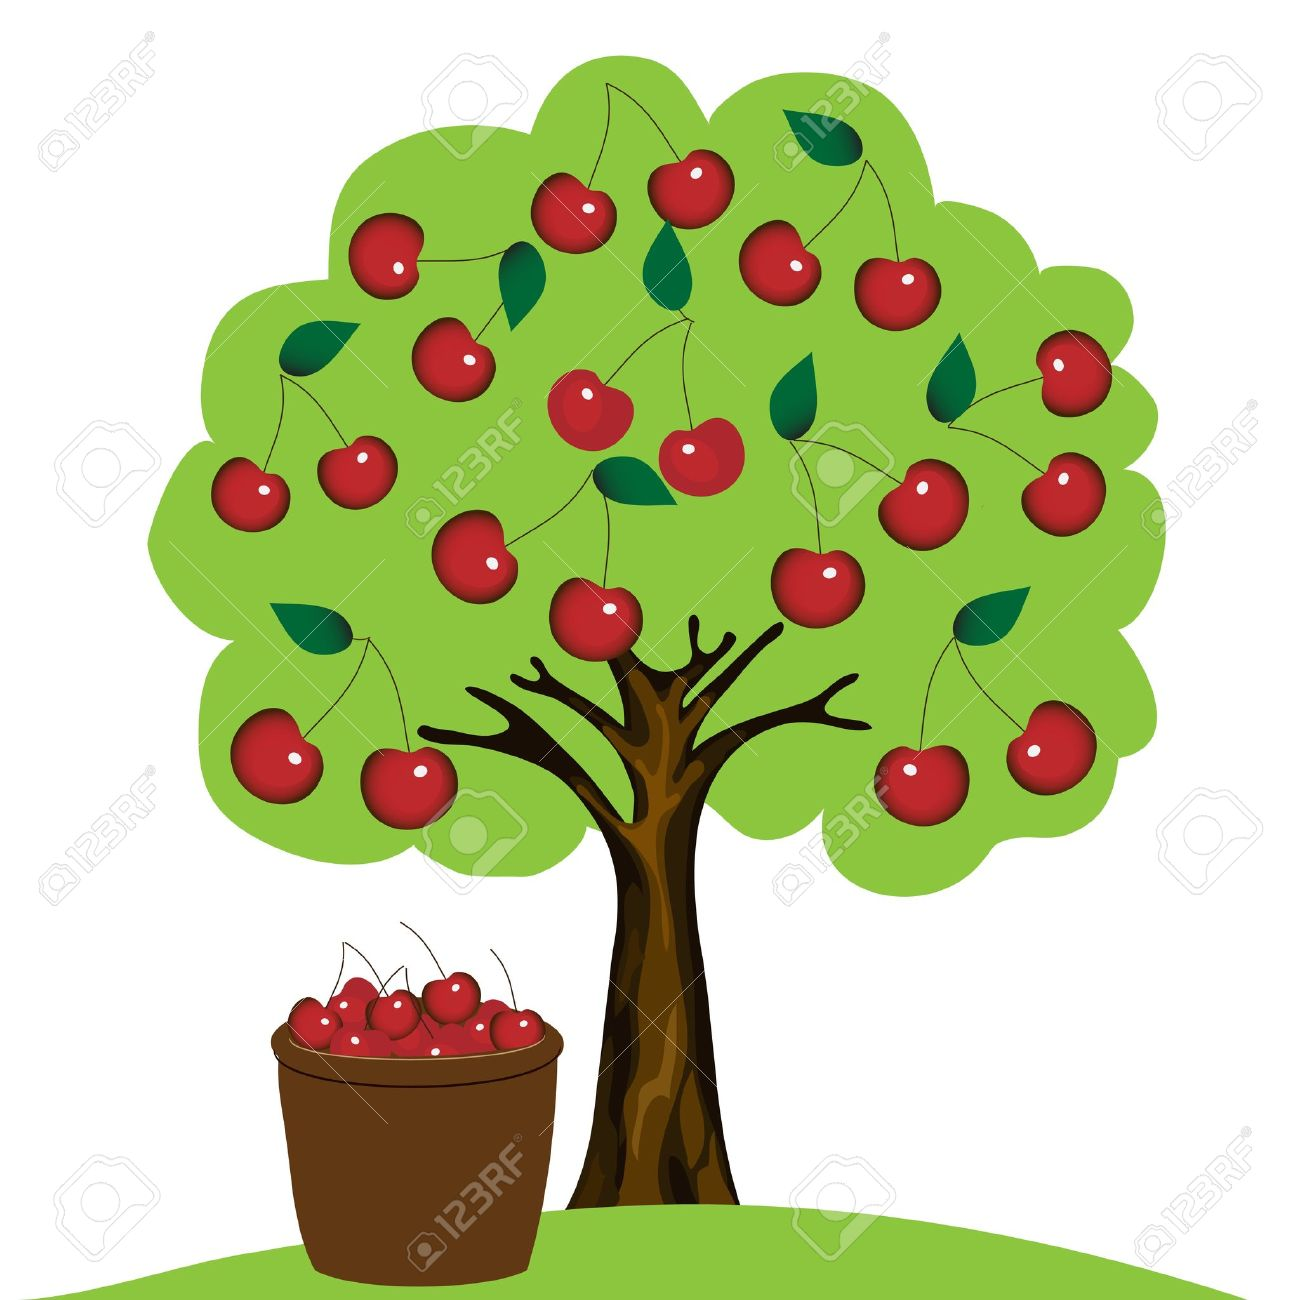 Fruit tree clipart 7 » Clipart Station.